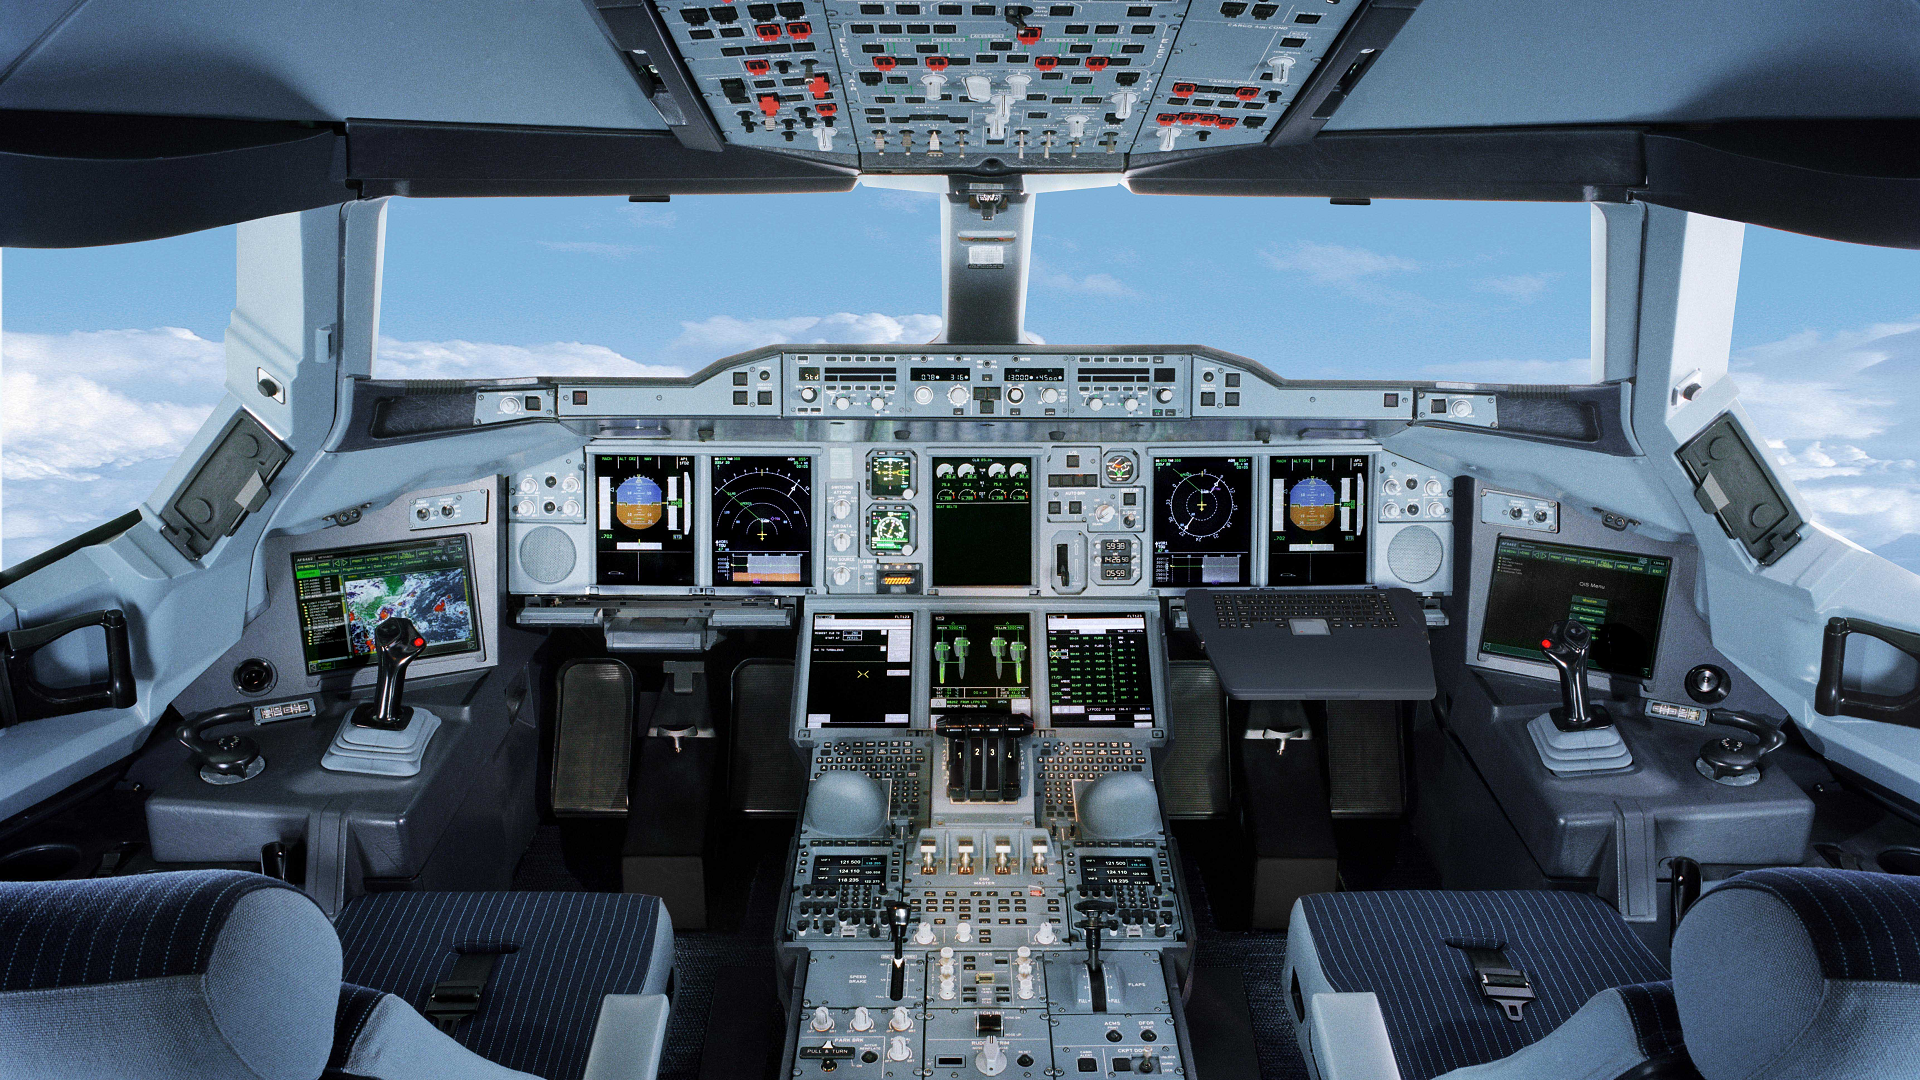 Airbus A380 Cockpit Wallpaper Images Pictures   Becuo 1920x1080